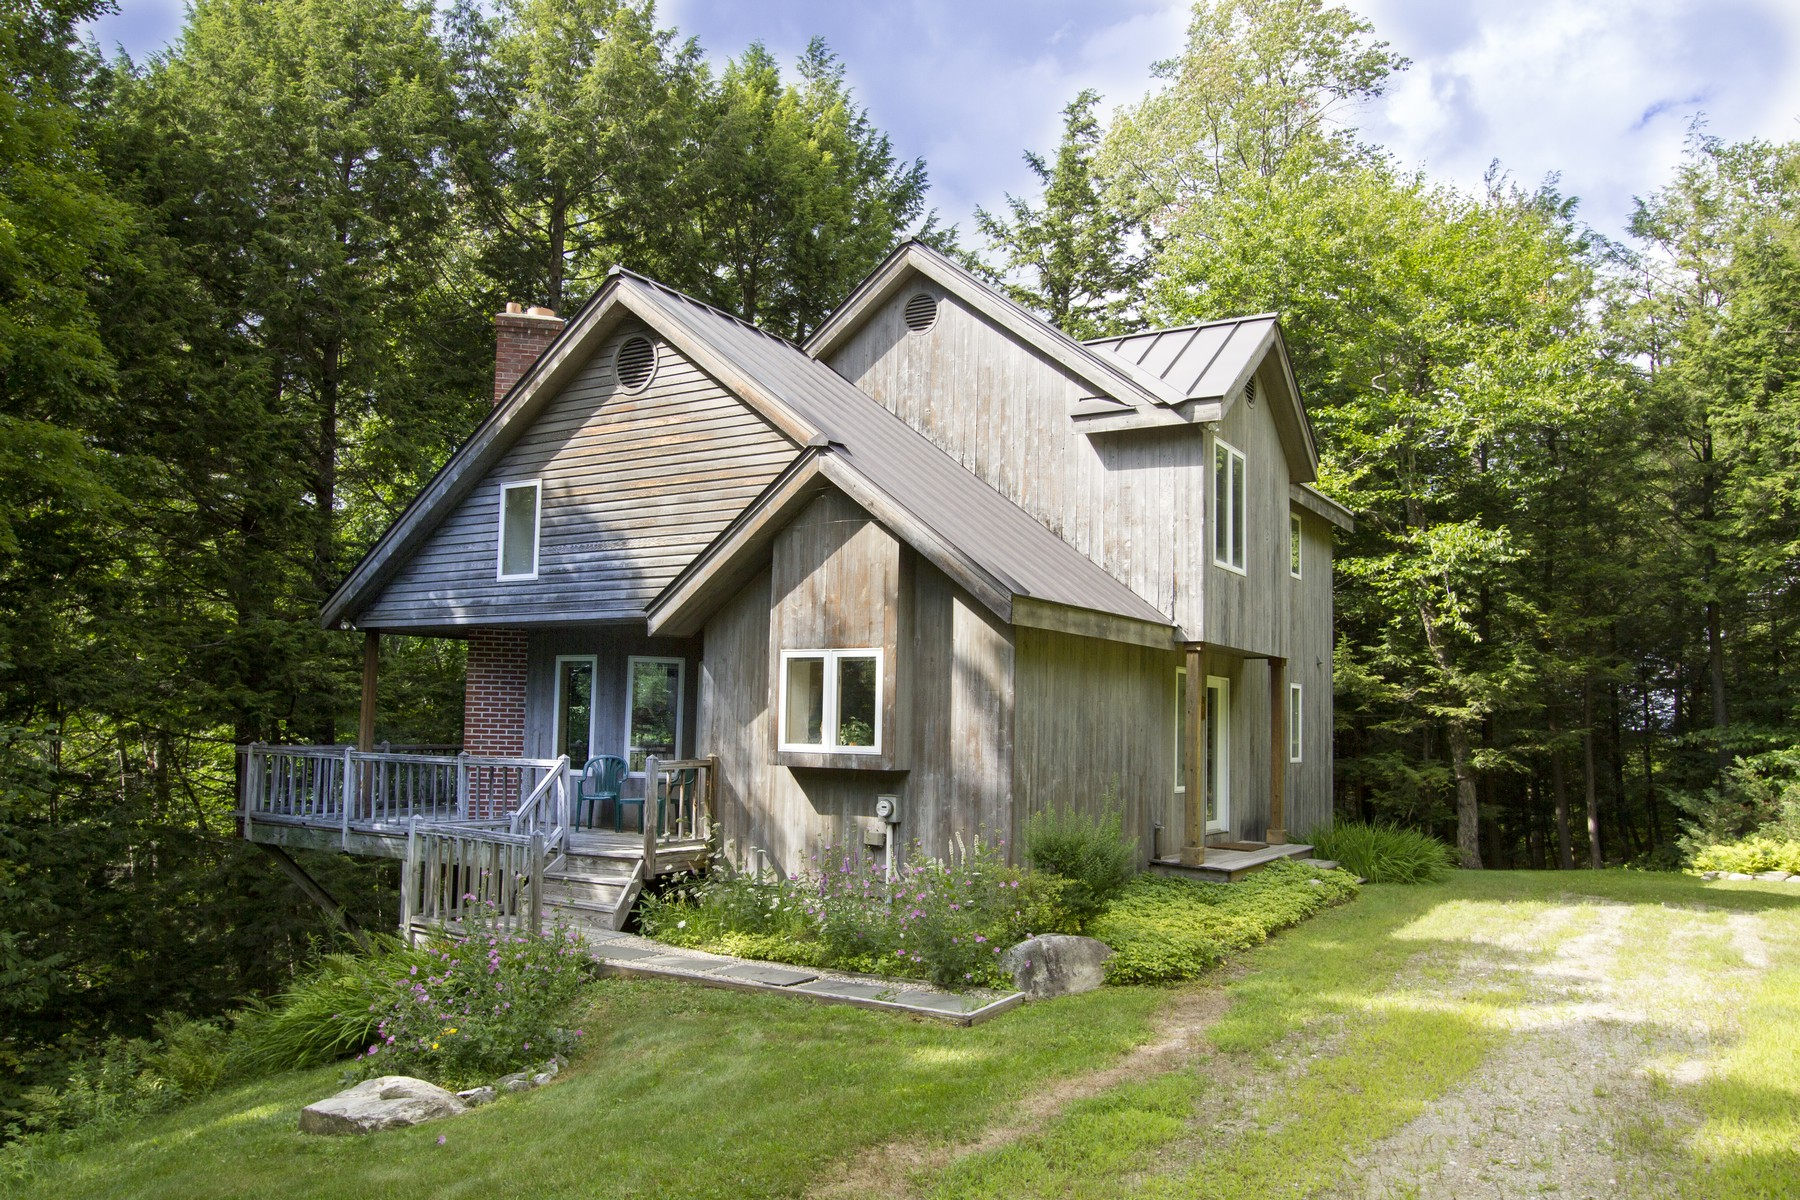 Single Family Home for Sale at Turn-key Mountain Ge 27 Todd Hill Rd Winhall, Vermont, 05340 United States